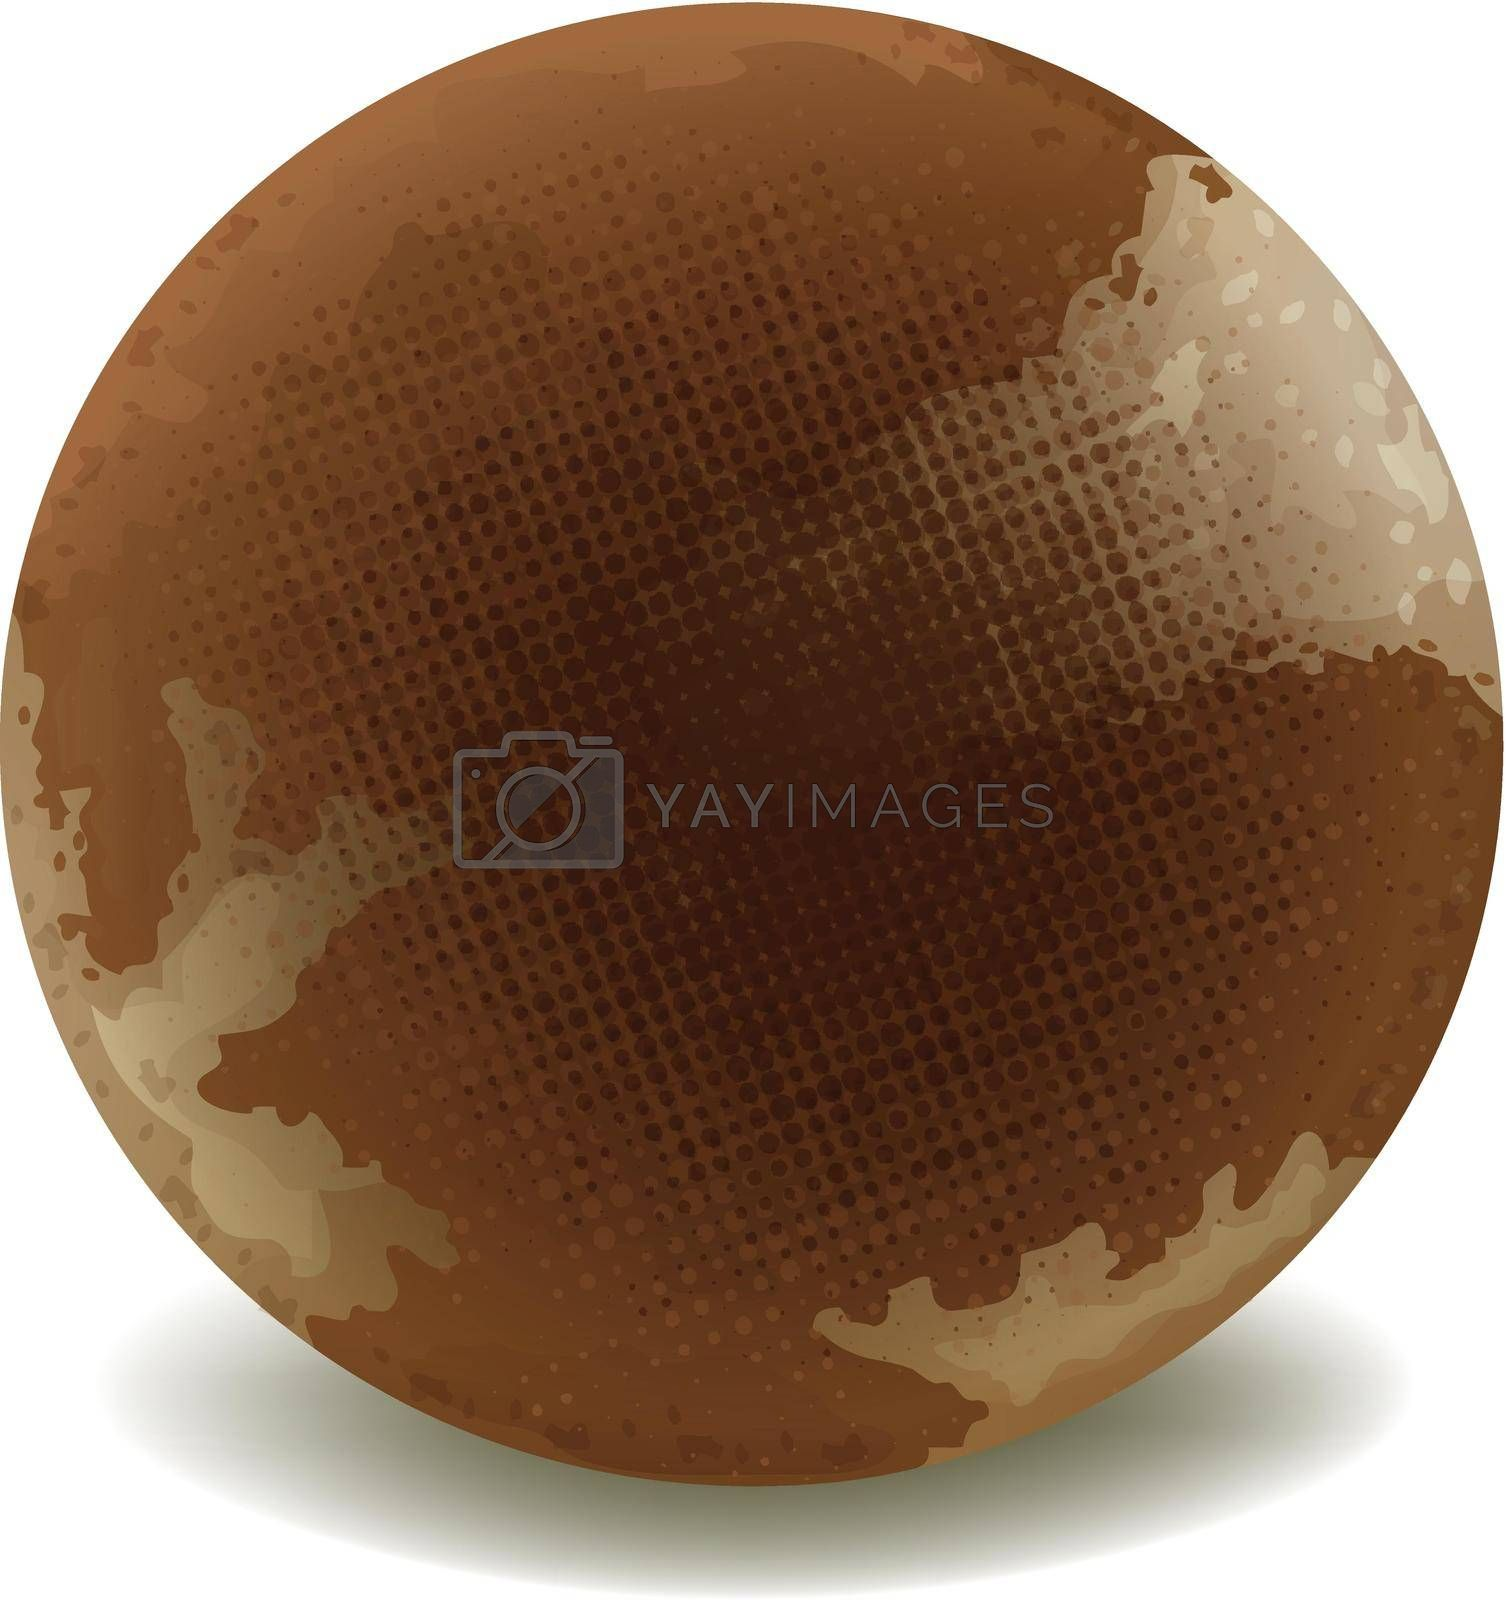 illustration of a round chocolate on a white background